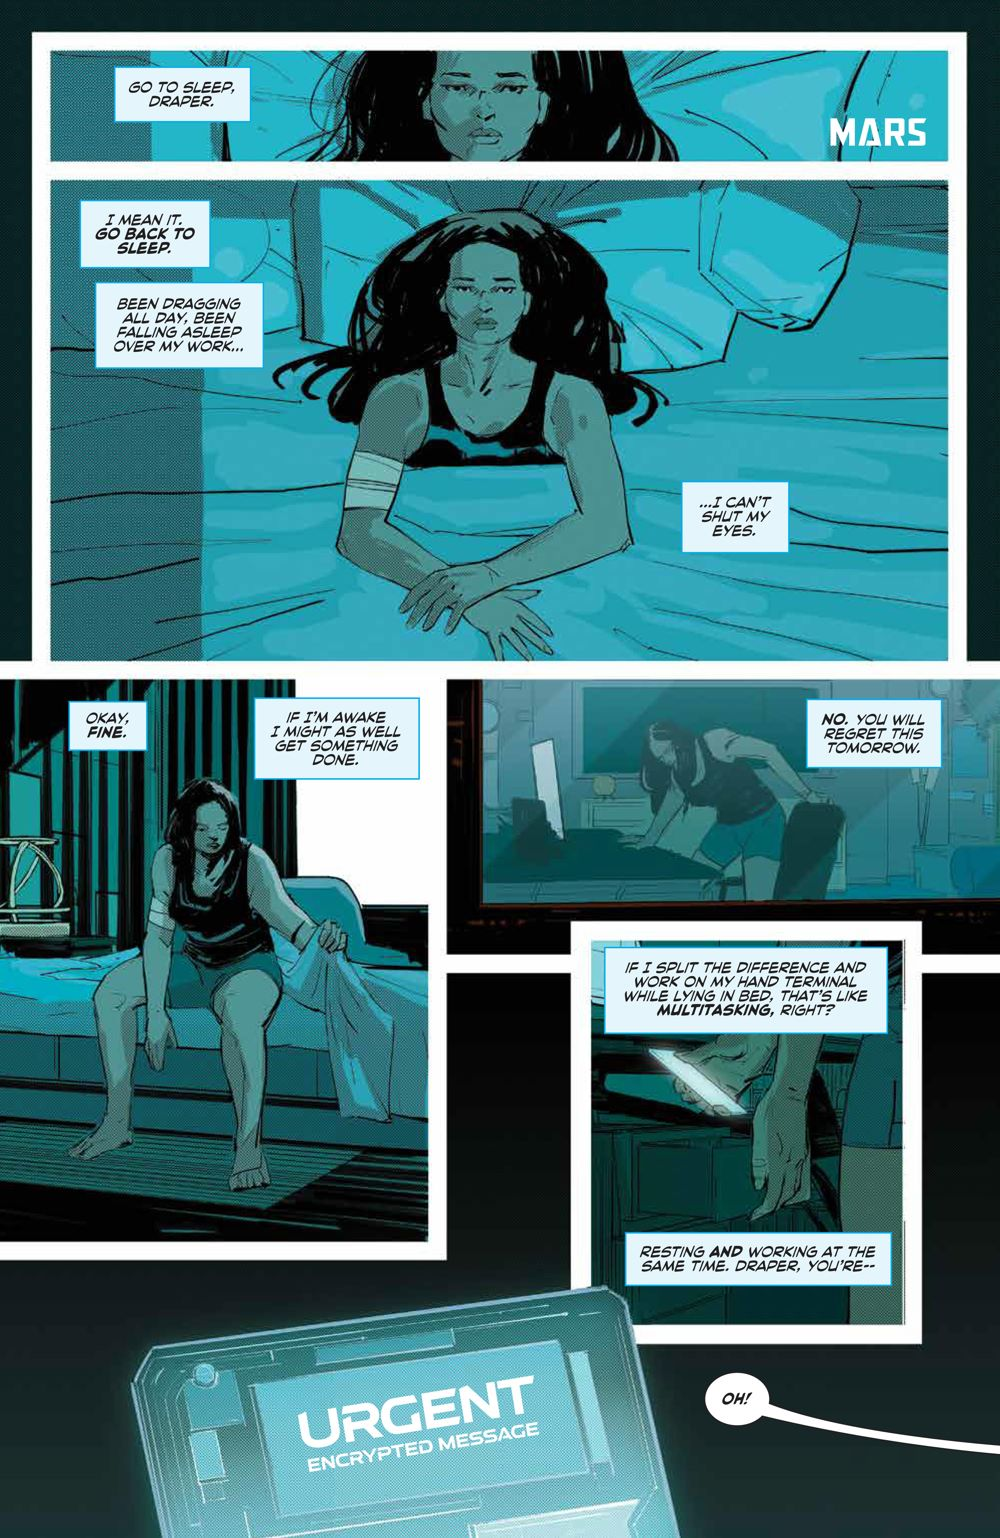 Expanse_003_PRESS_3 ComicList Previews: THE EXPANSE #3 (OF 4)